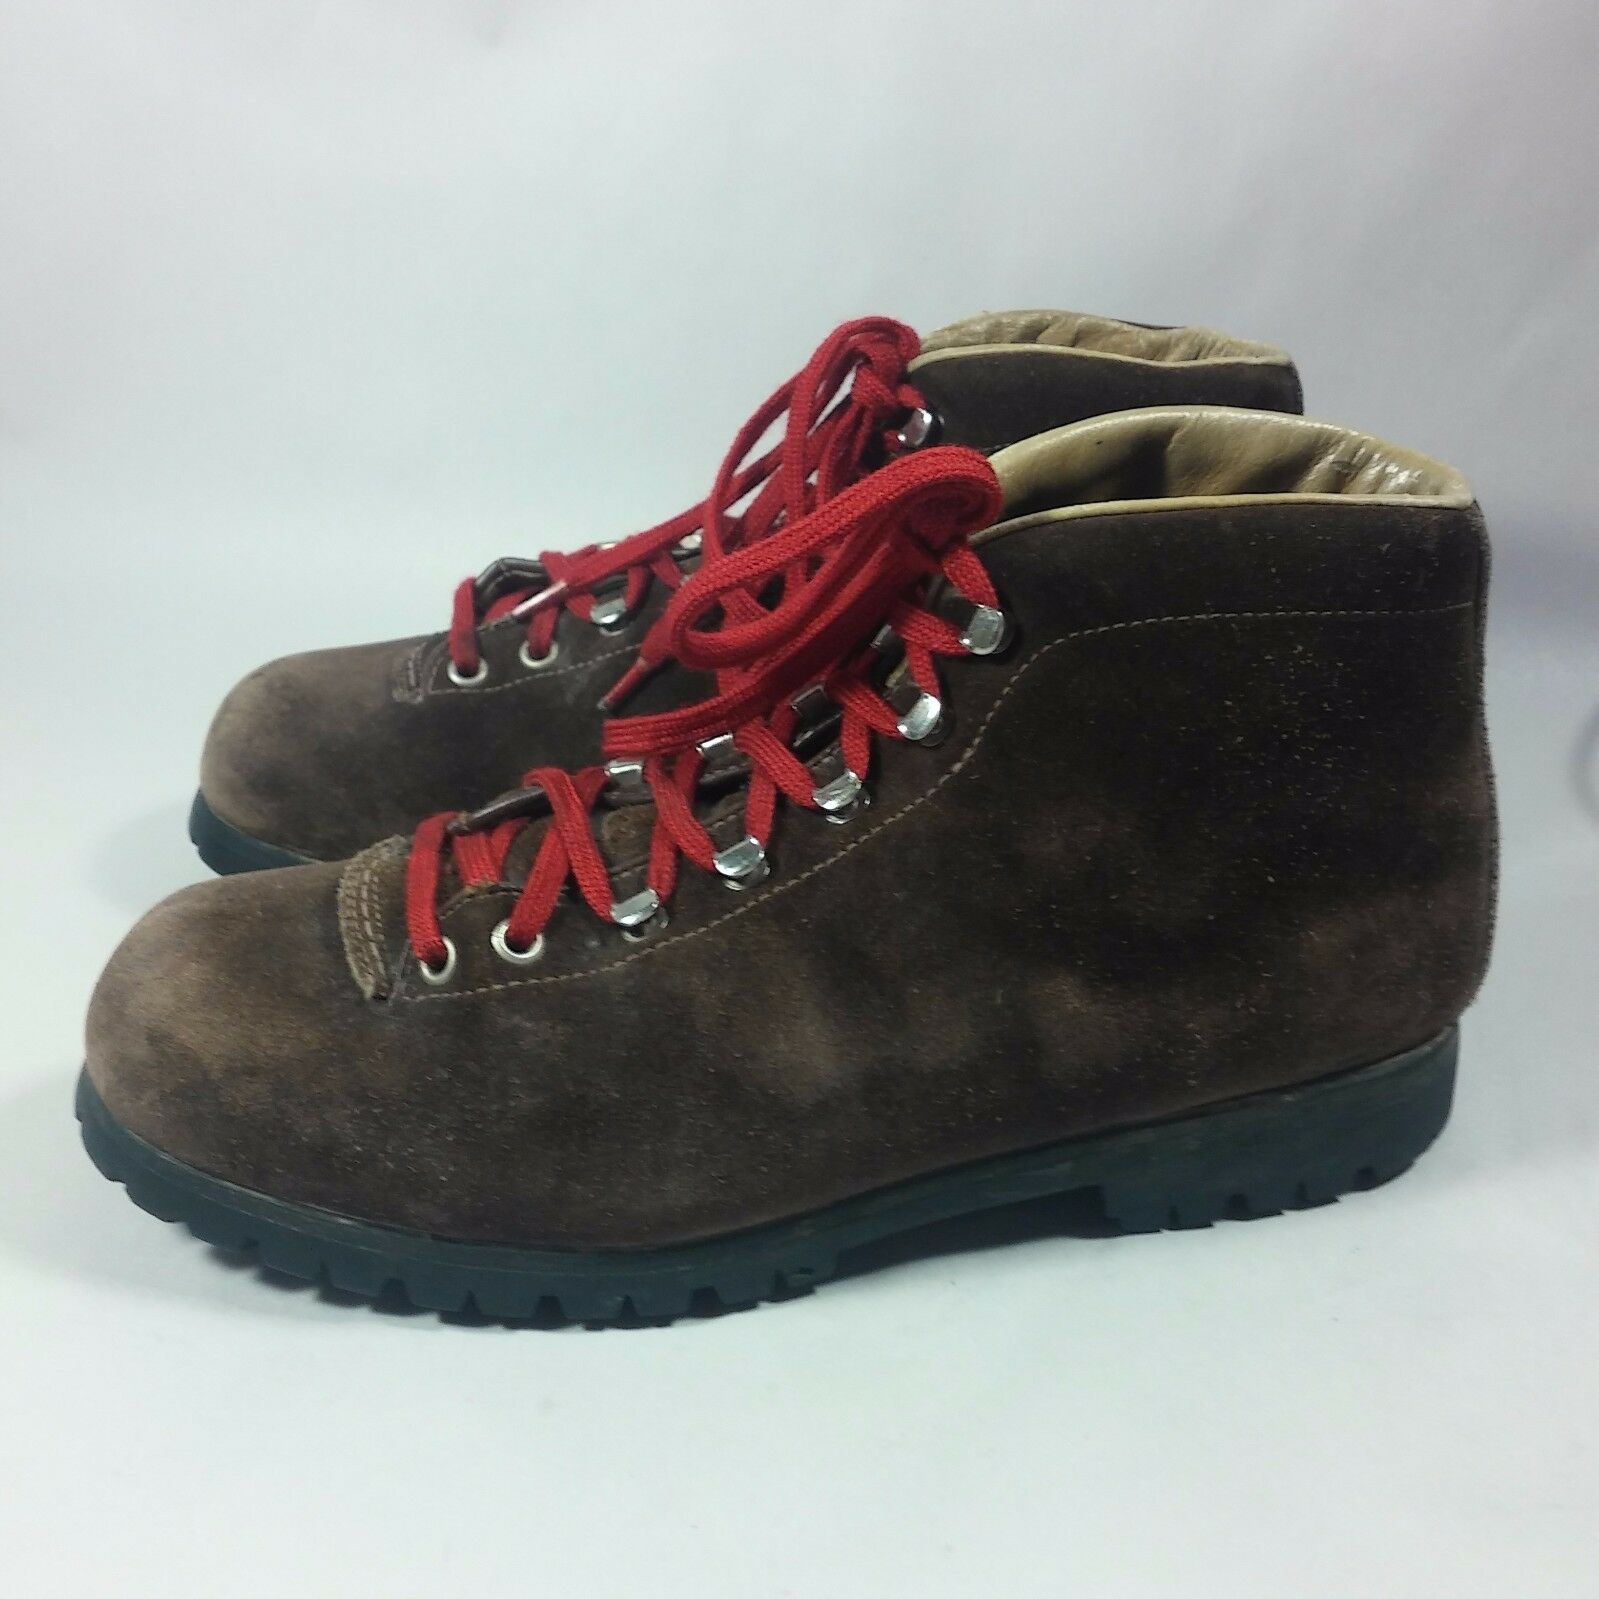 VINTAGE Women's Fabiano Palons ITALIAN Mountaineering Hiking Boots NICE -10 M